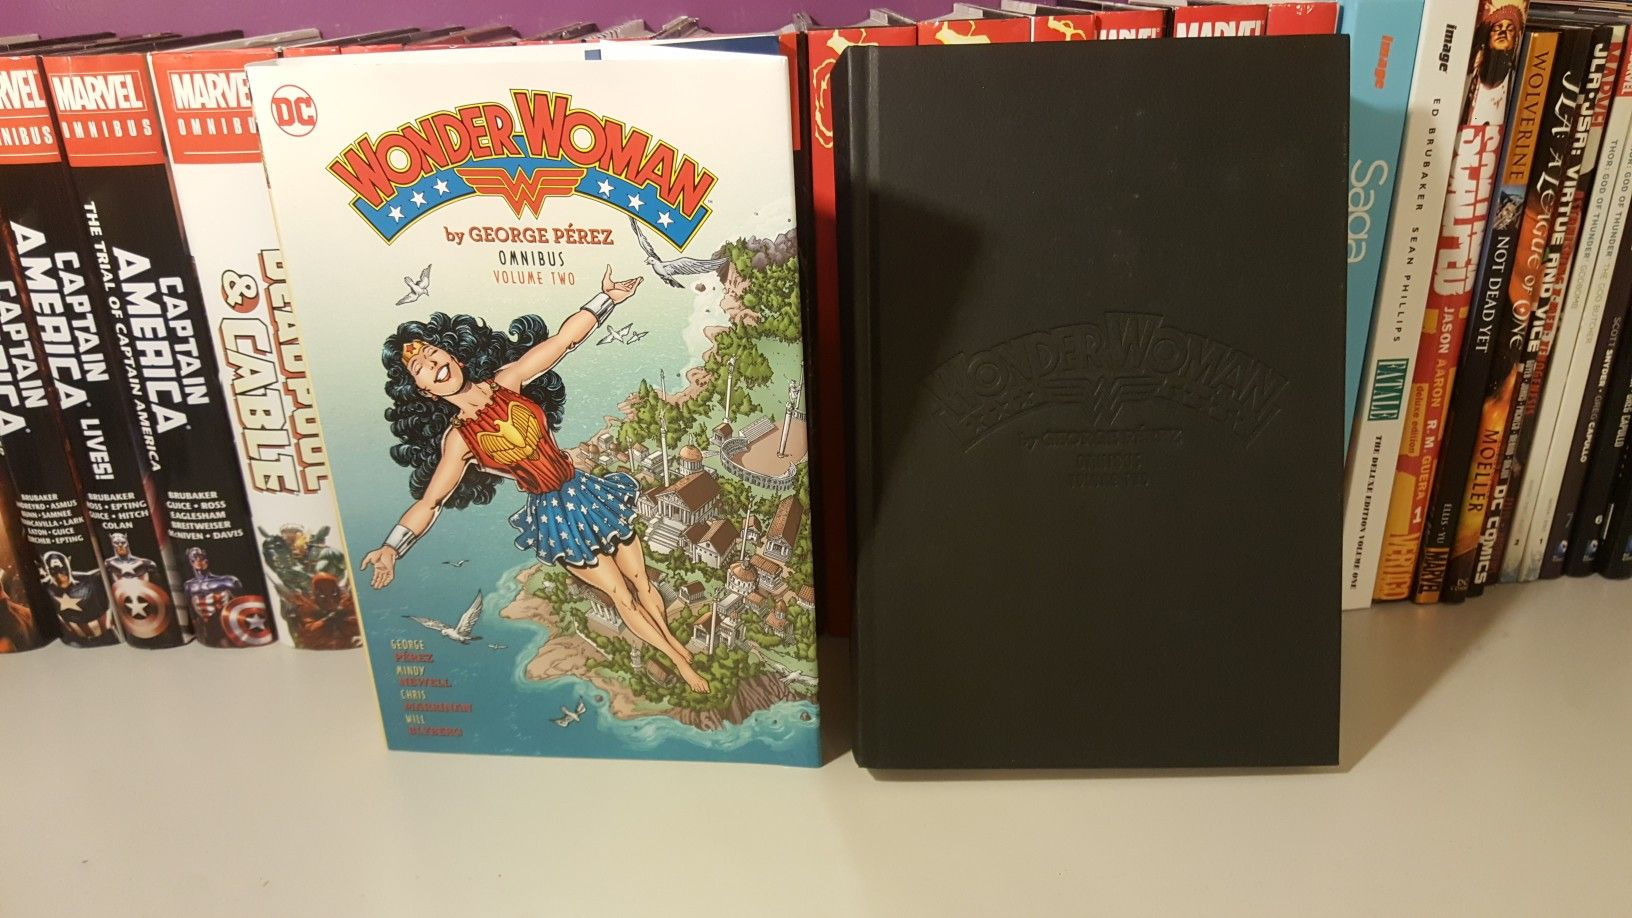 Wonder Woman Vol 2 Omnibus Overview Video Https M Youtube Com Watch V 0i9ygvym7gu Dccomics Deathstroke Comic Book Collection Comic Collection Deathstroke